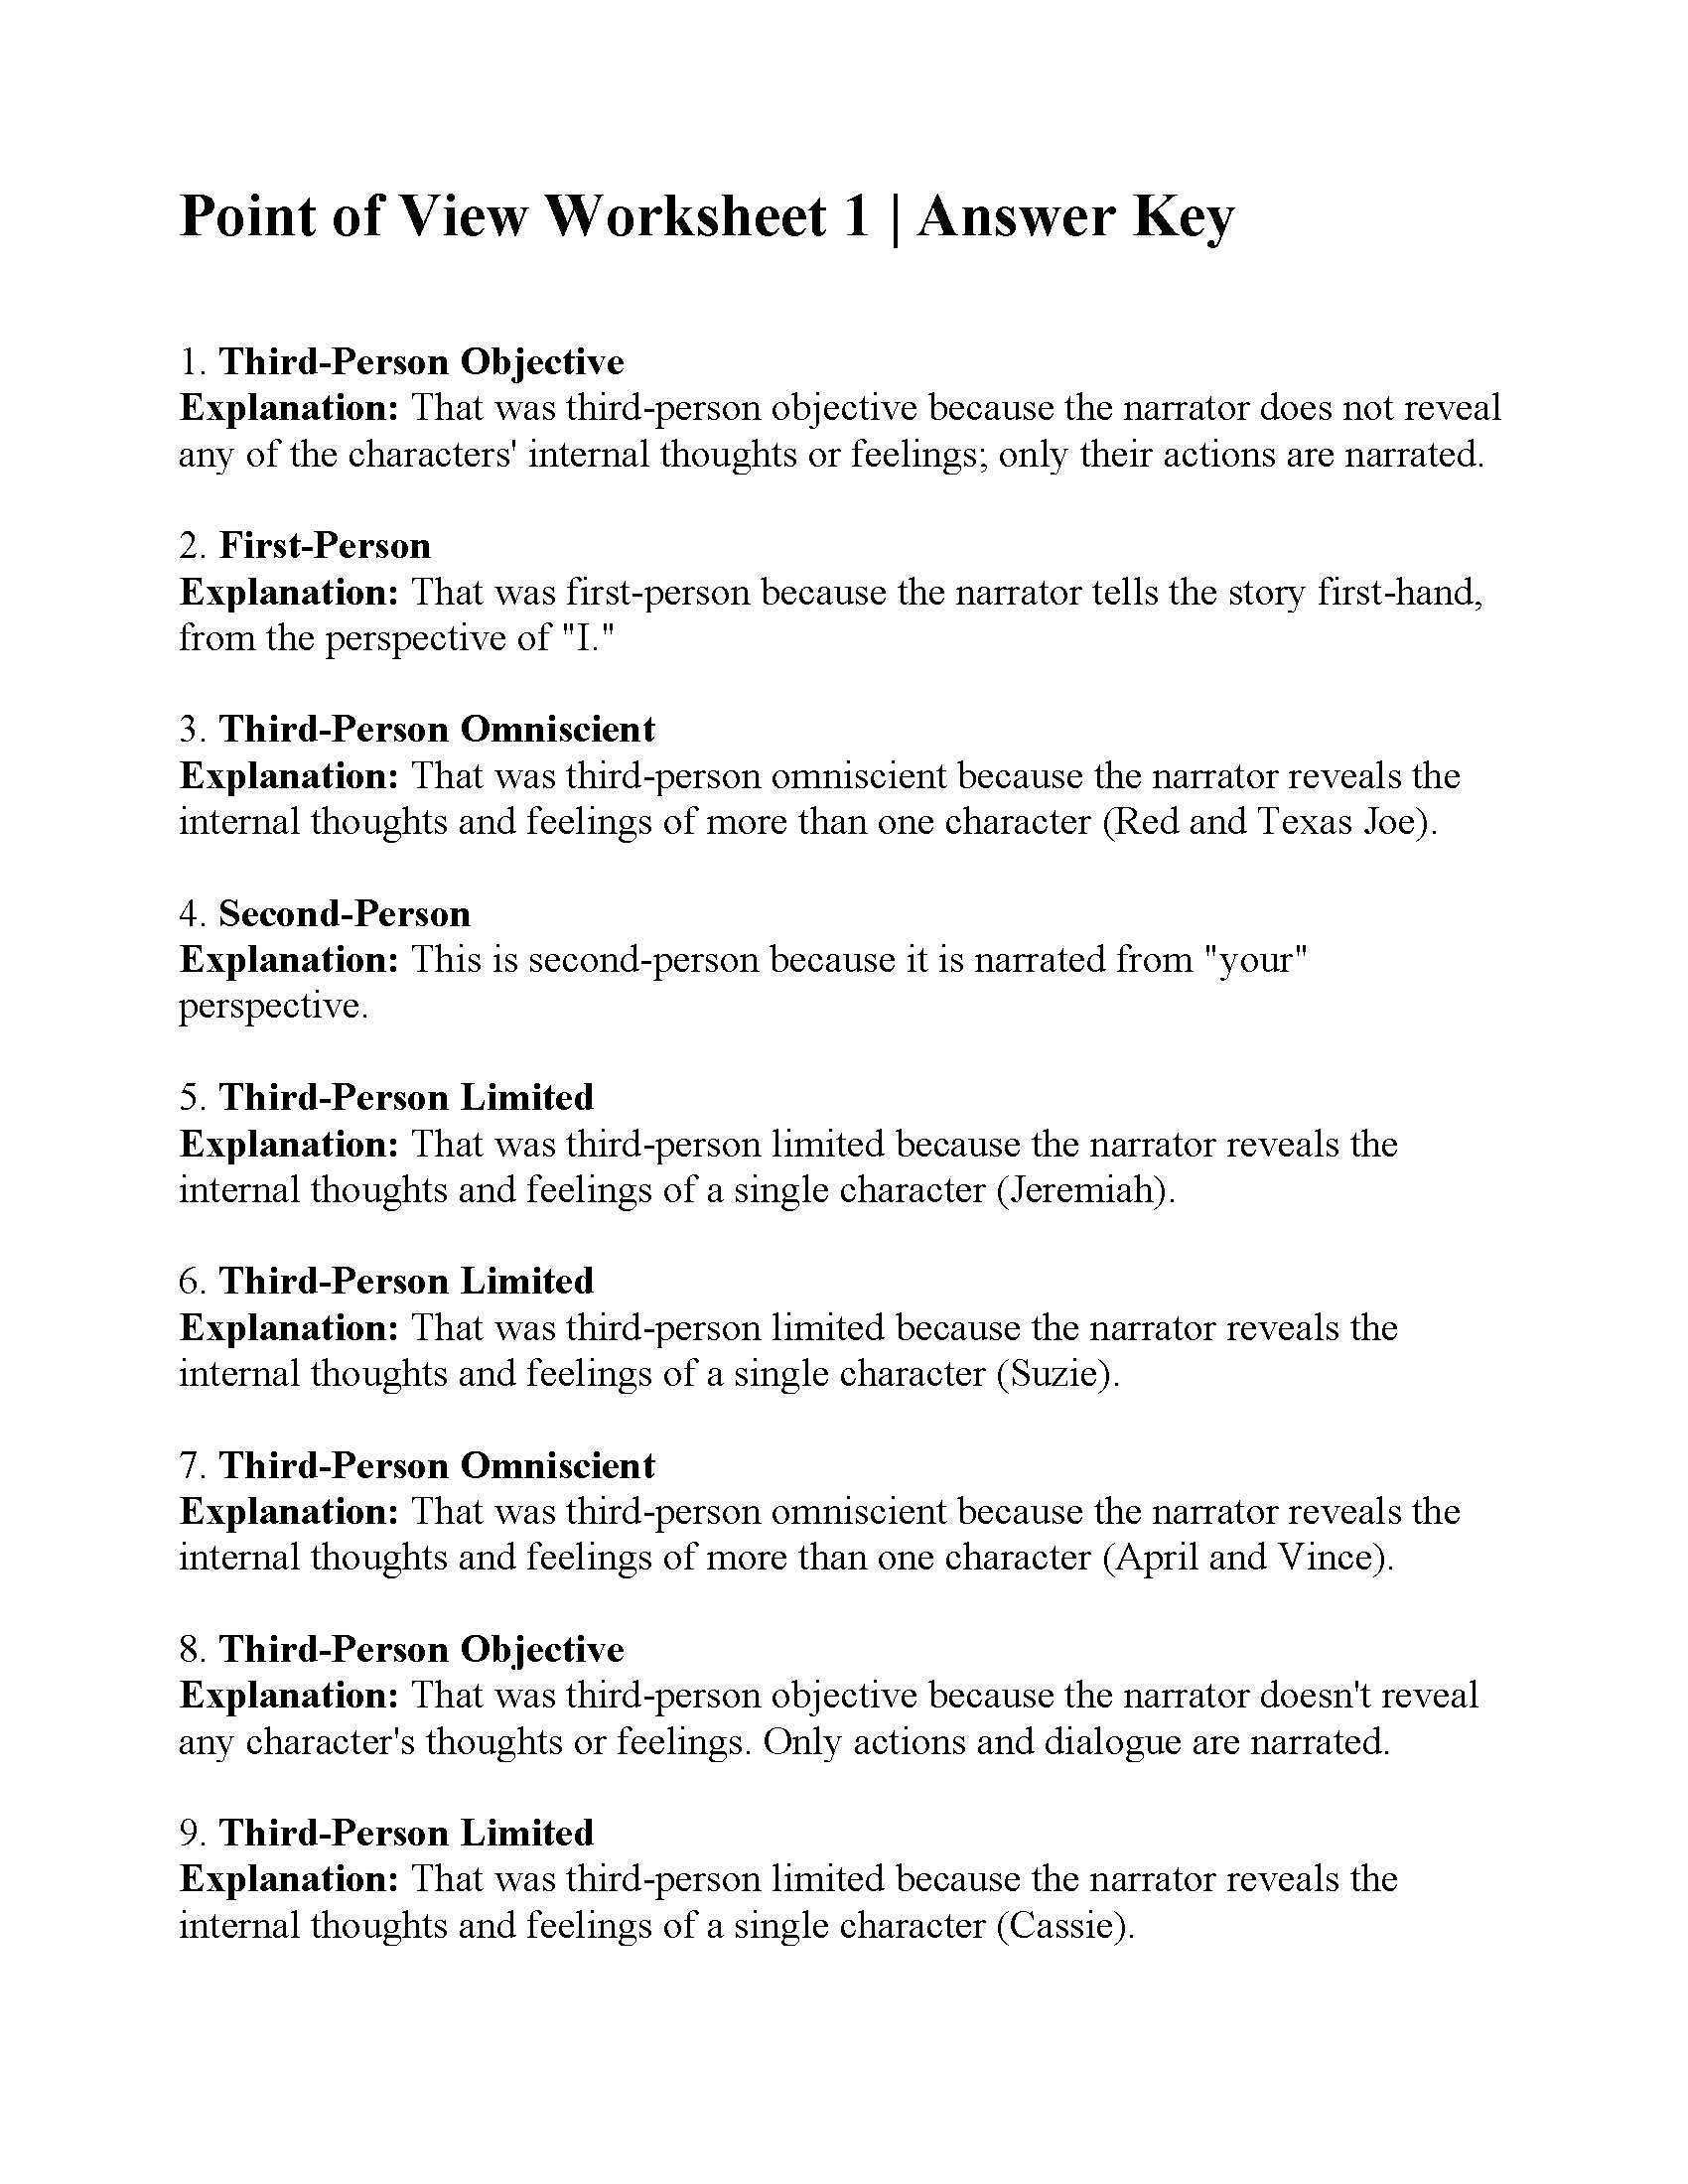 Dialogue Worksheets 4th Grade Point Of View Worksheet 1